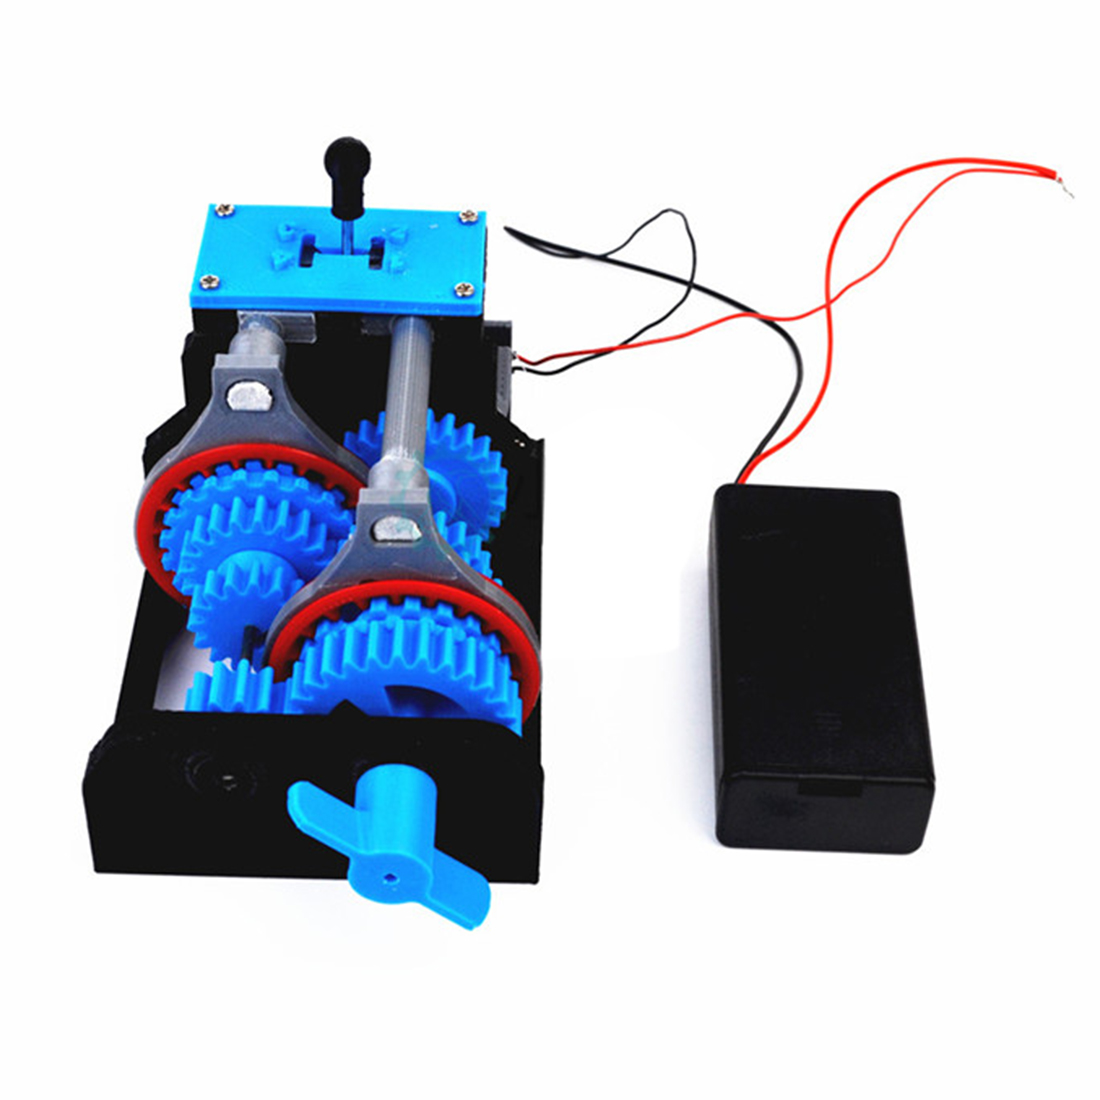 3D Printed Four-Speed Transmission Simulation Model DIY Stem Toy With Battery Box Educational Toy Gift For Kid - Motor Version